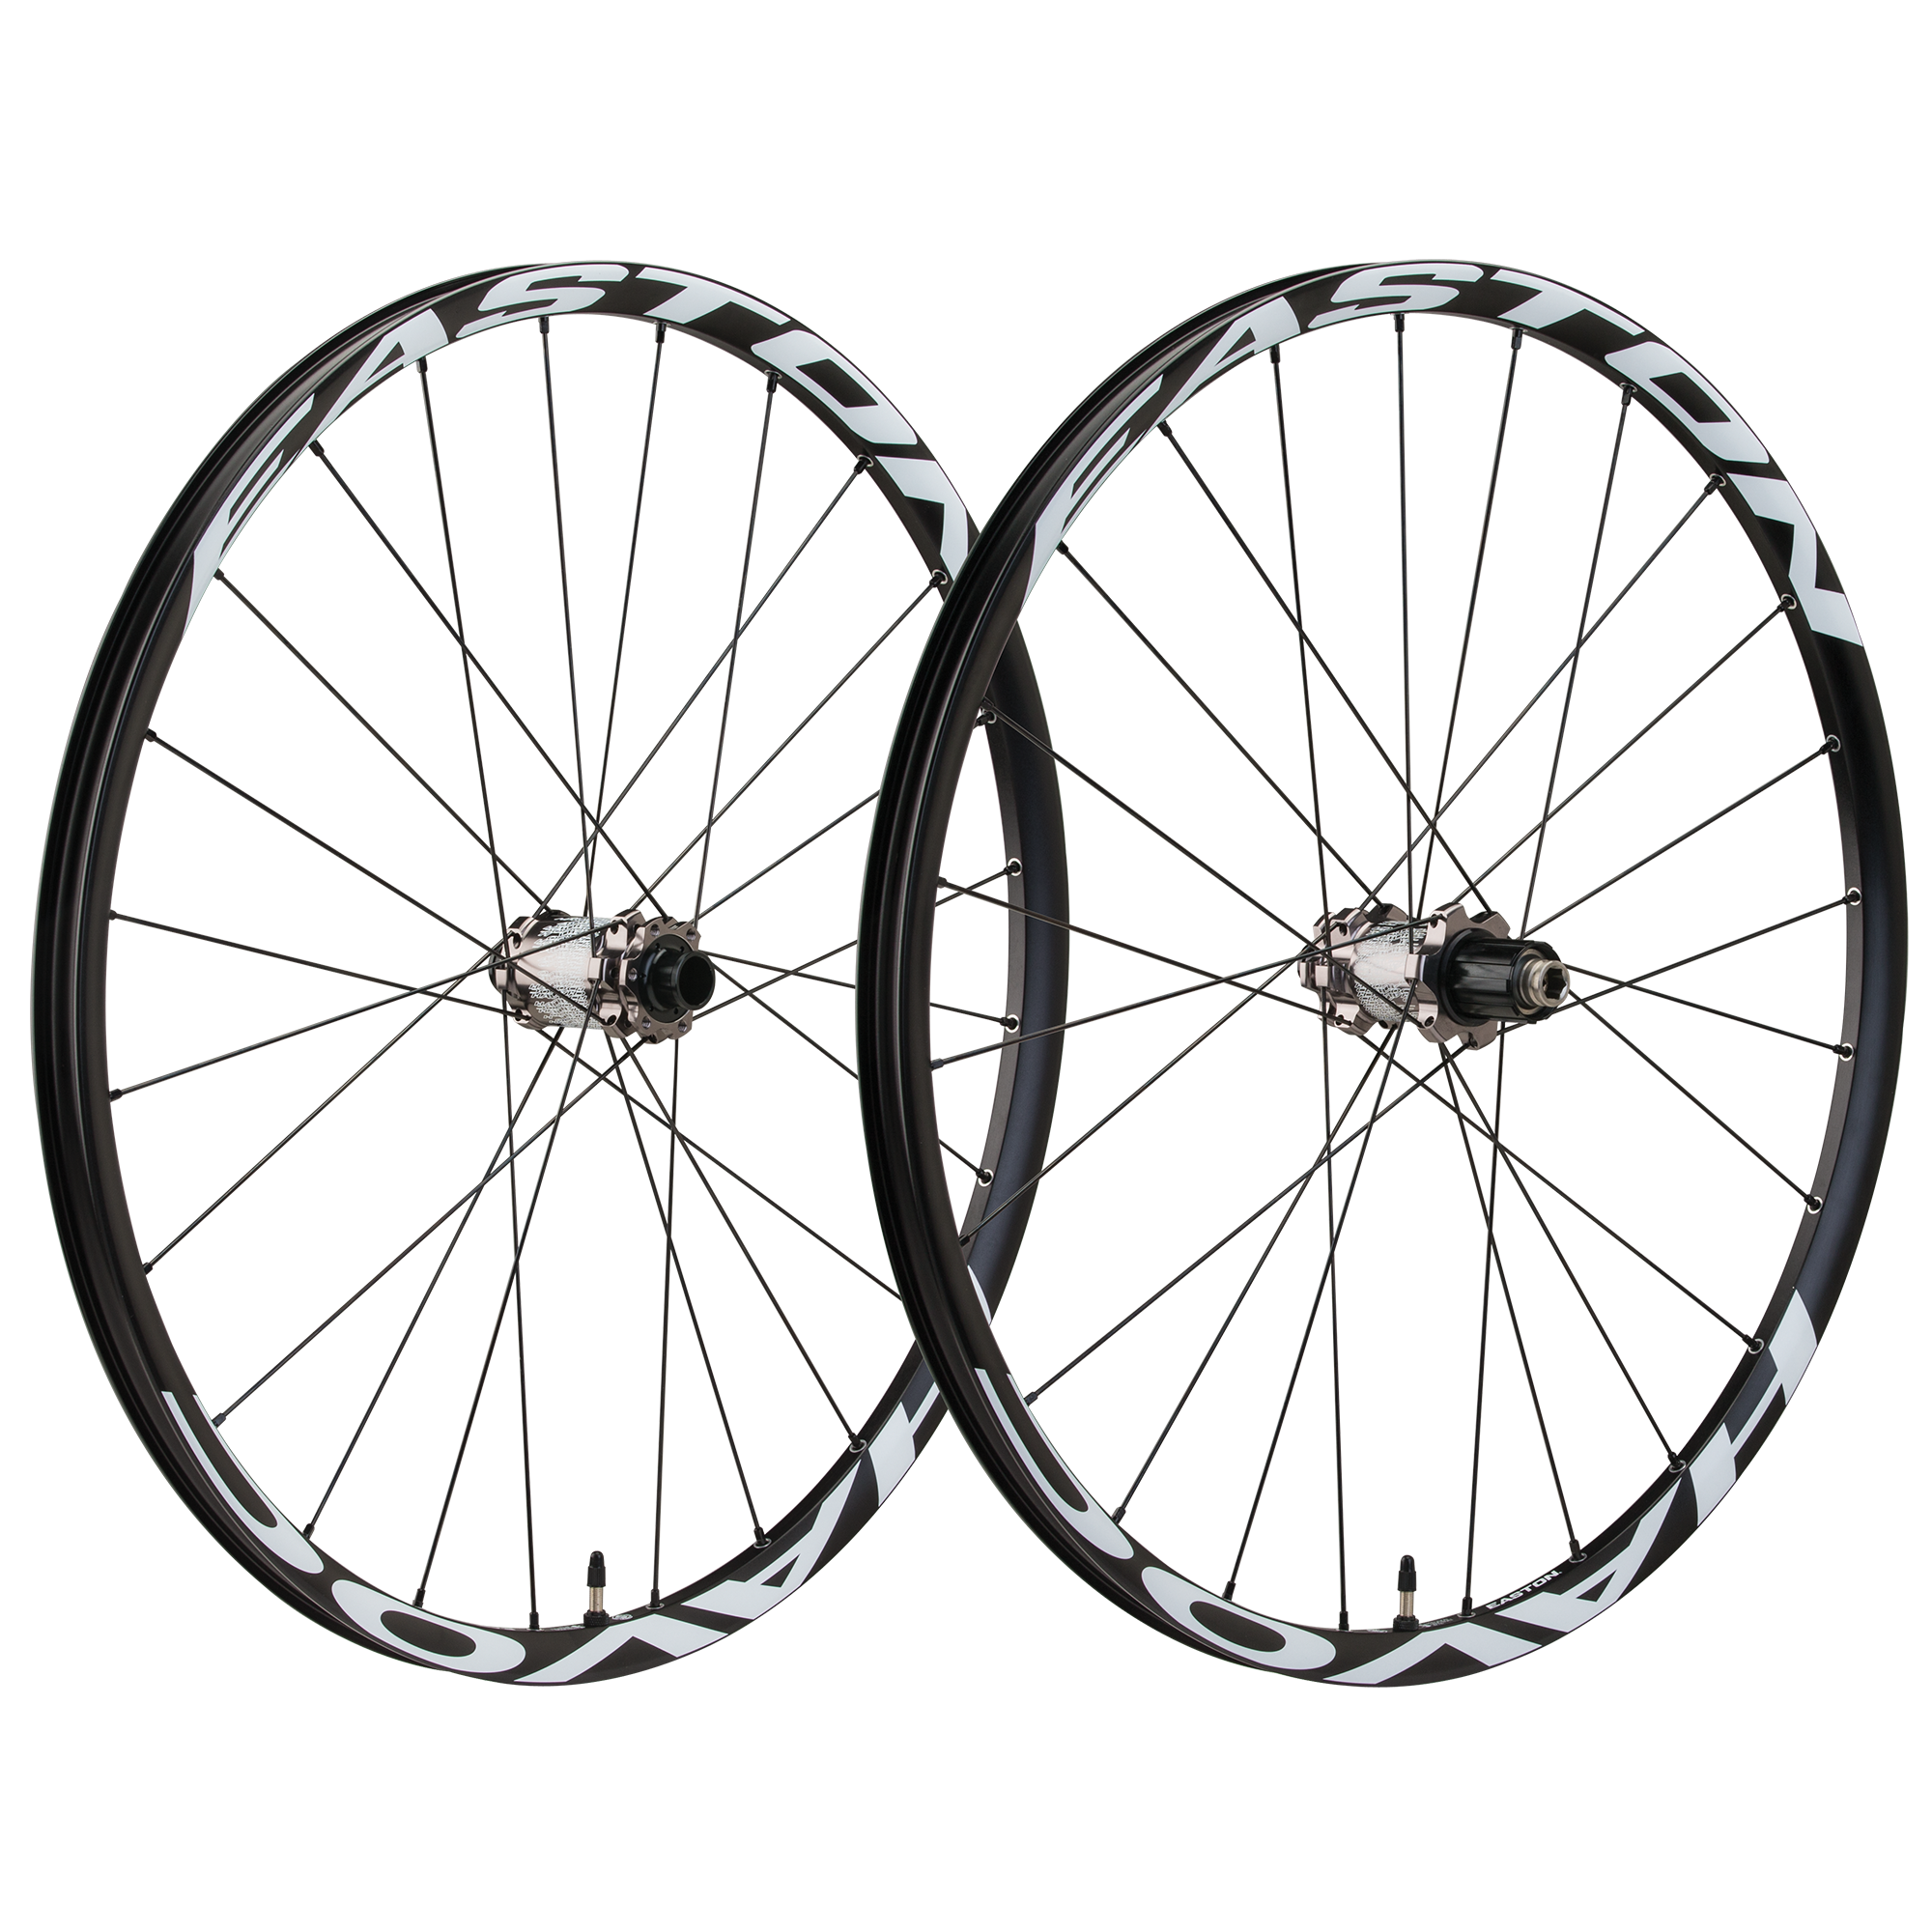 Havoc easton cycling. Rim drawing jpg